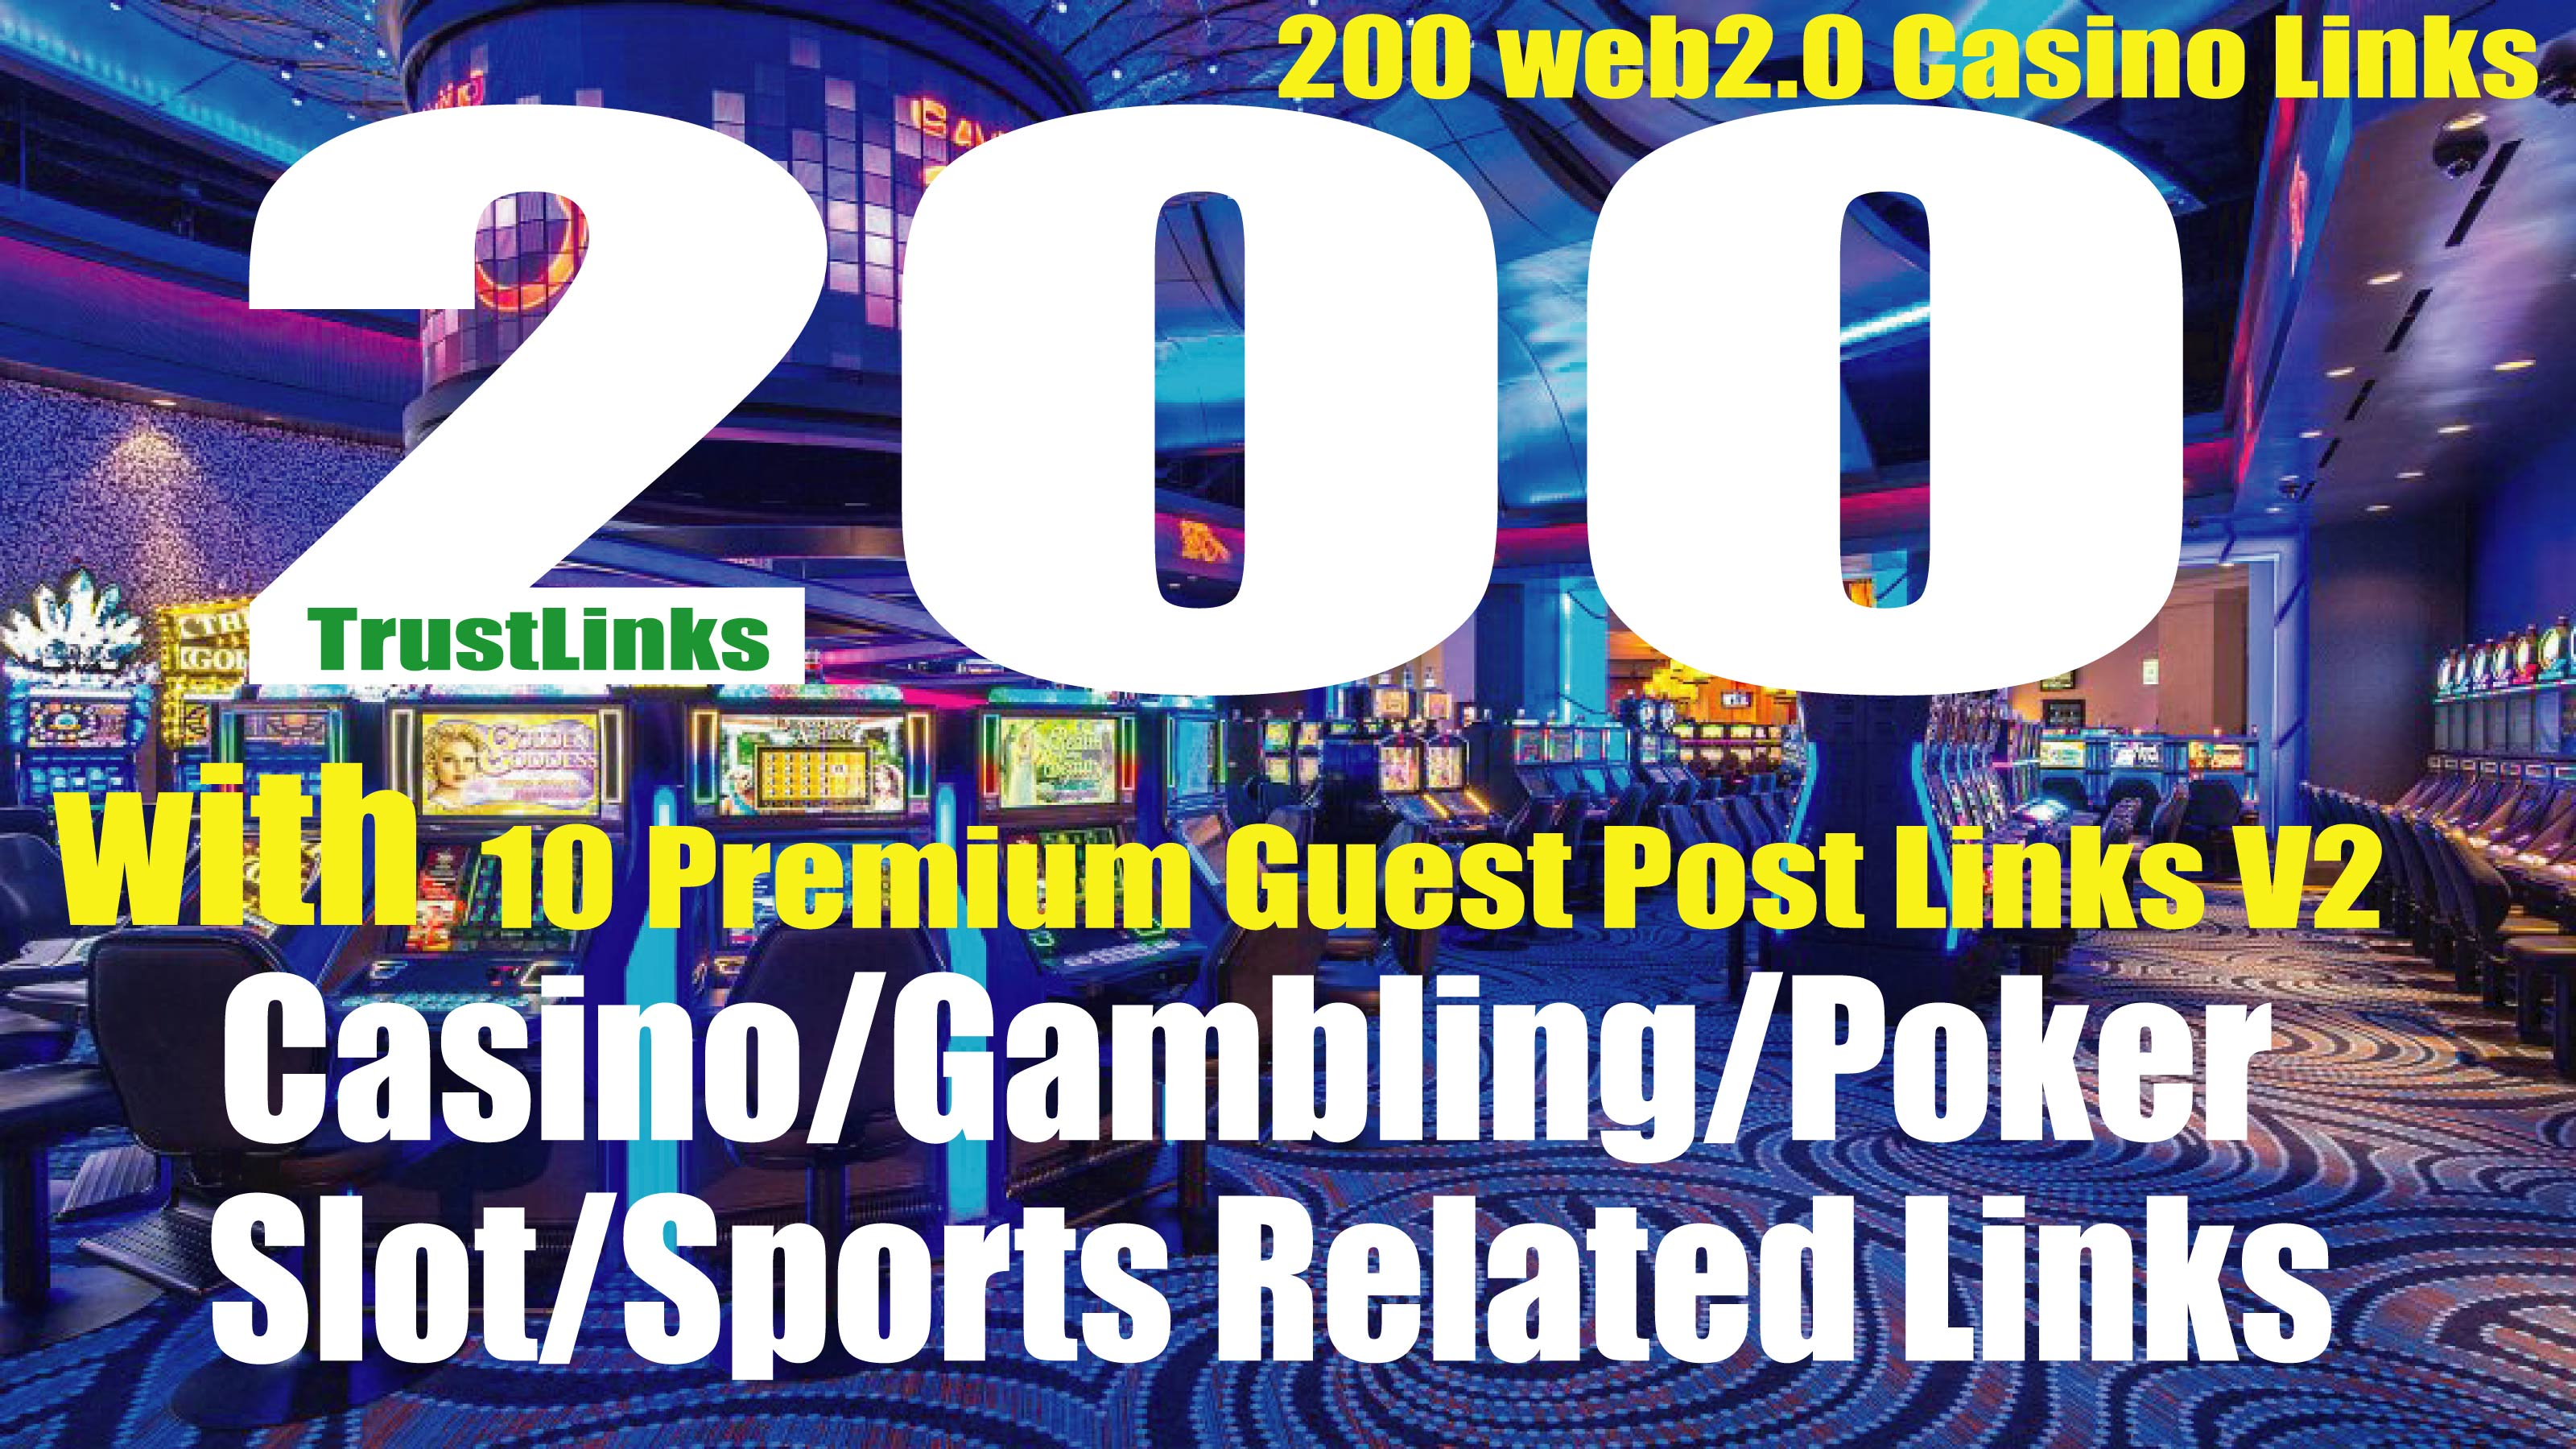 210 Casino Blog post- Casino - Gambling - Poker - Betting - sports sites From Web2.0 Poperties